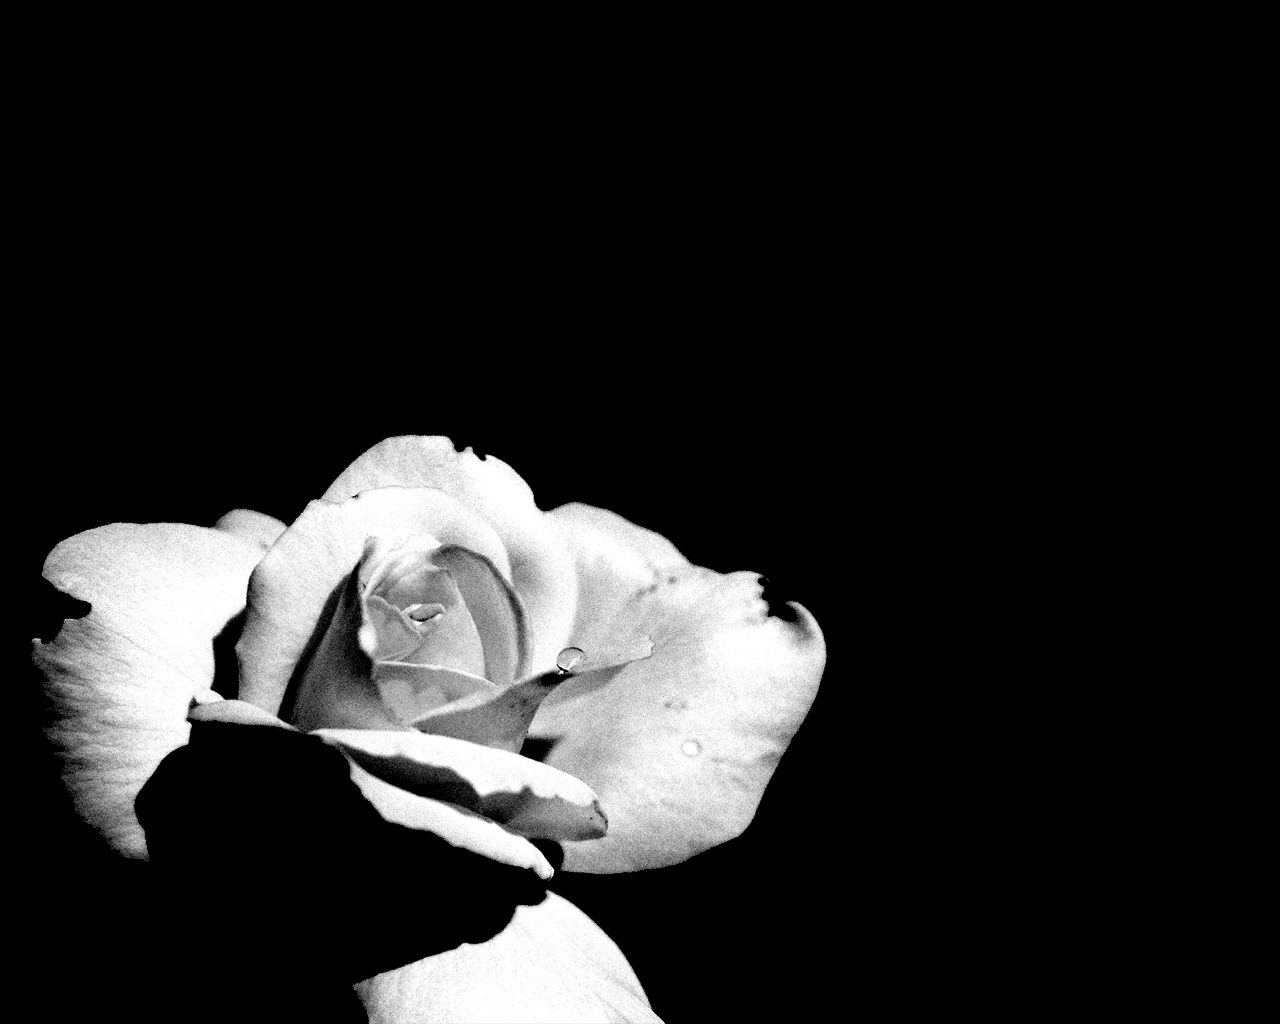 Black And White Rose Tumblr